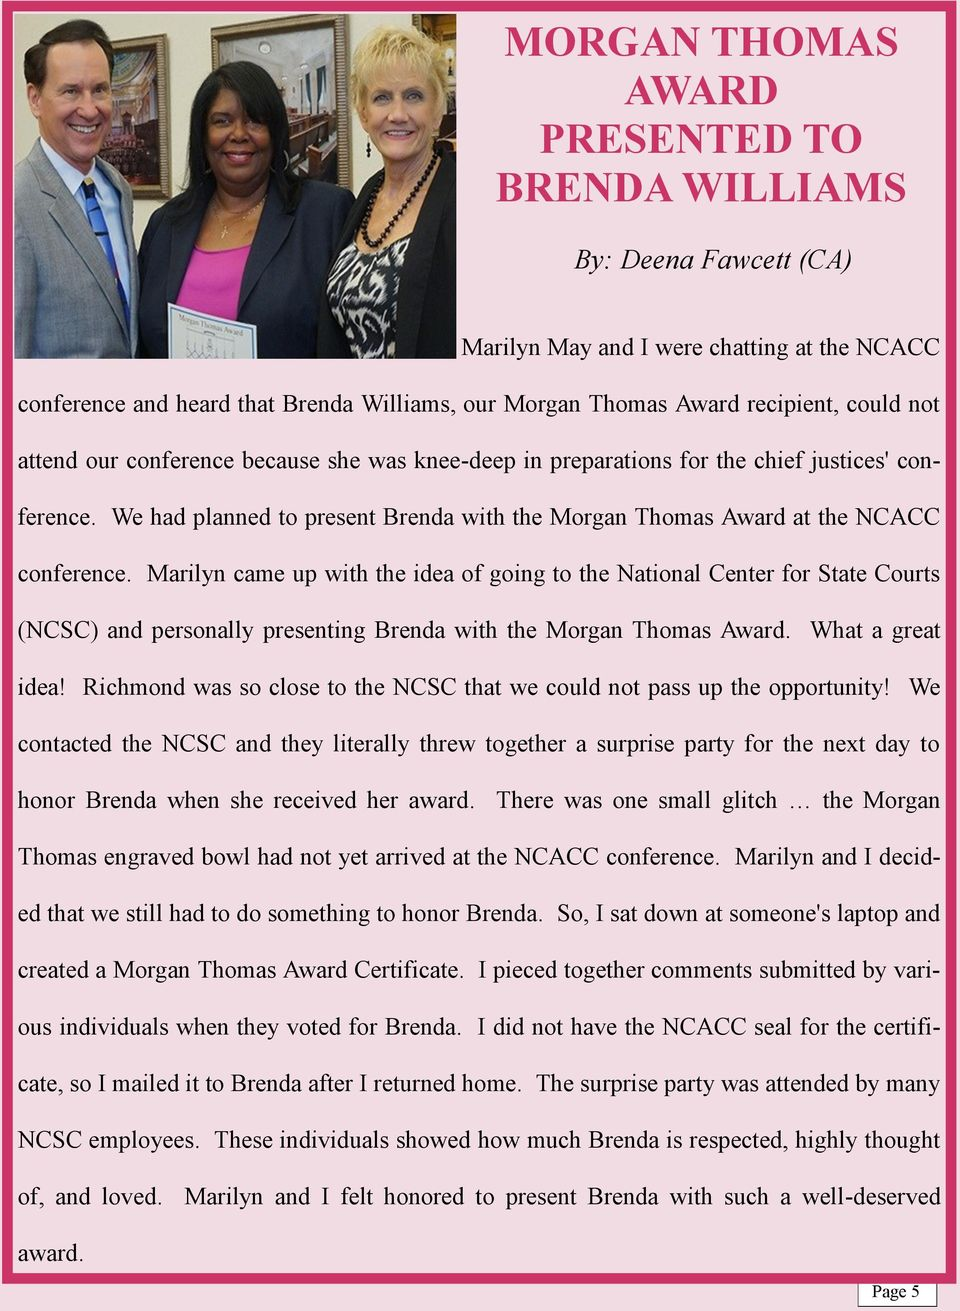 Marilyn came up with the idea of going to the National Center for State Courts (NCSC) and personally presenting Brenda with the Morgan Thomas Award. What a great idea!